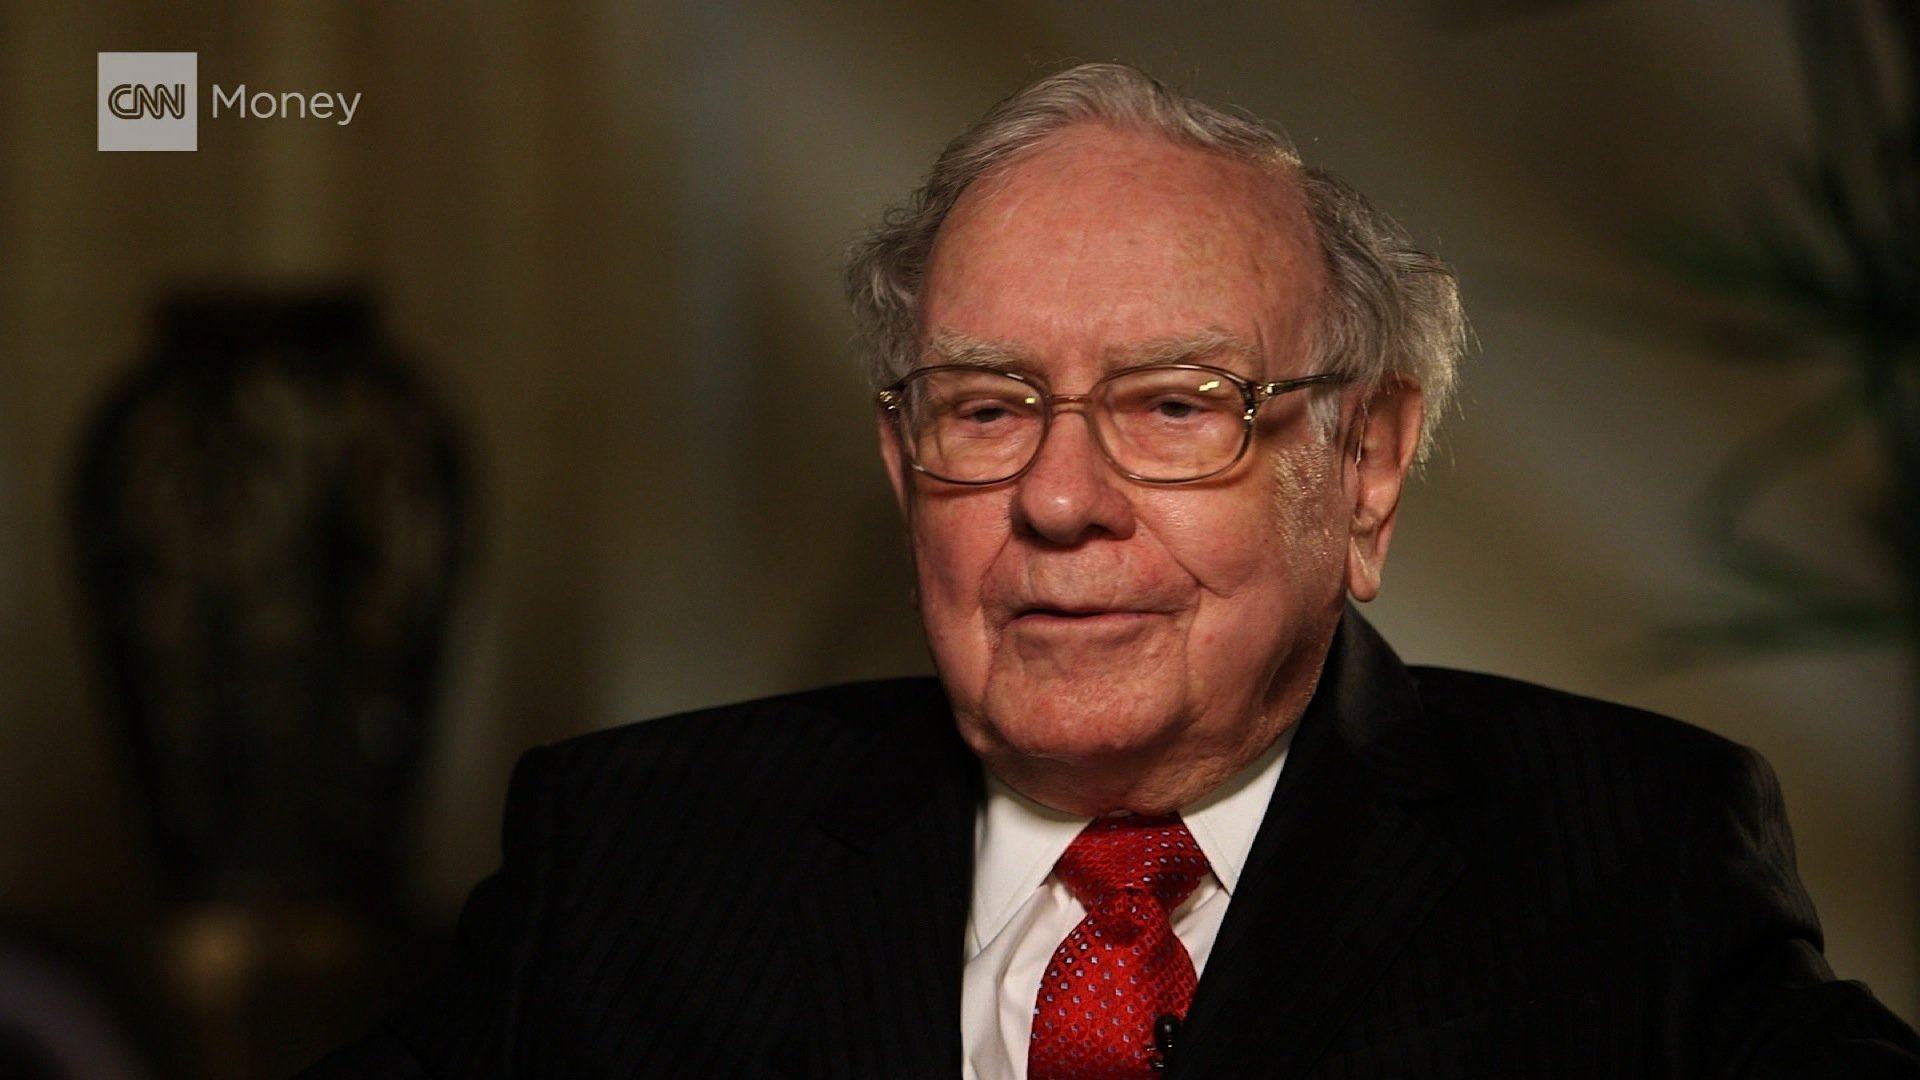 Warren Buffett is retiring from Kraft Heinz board